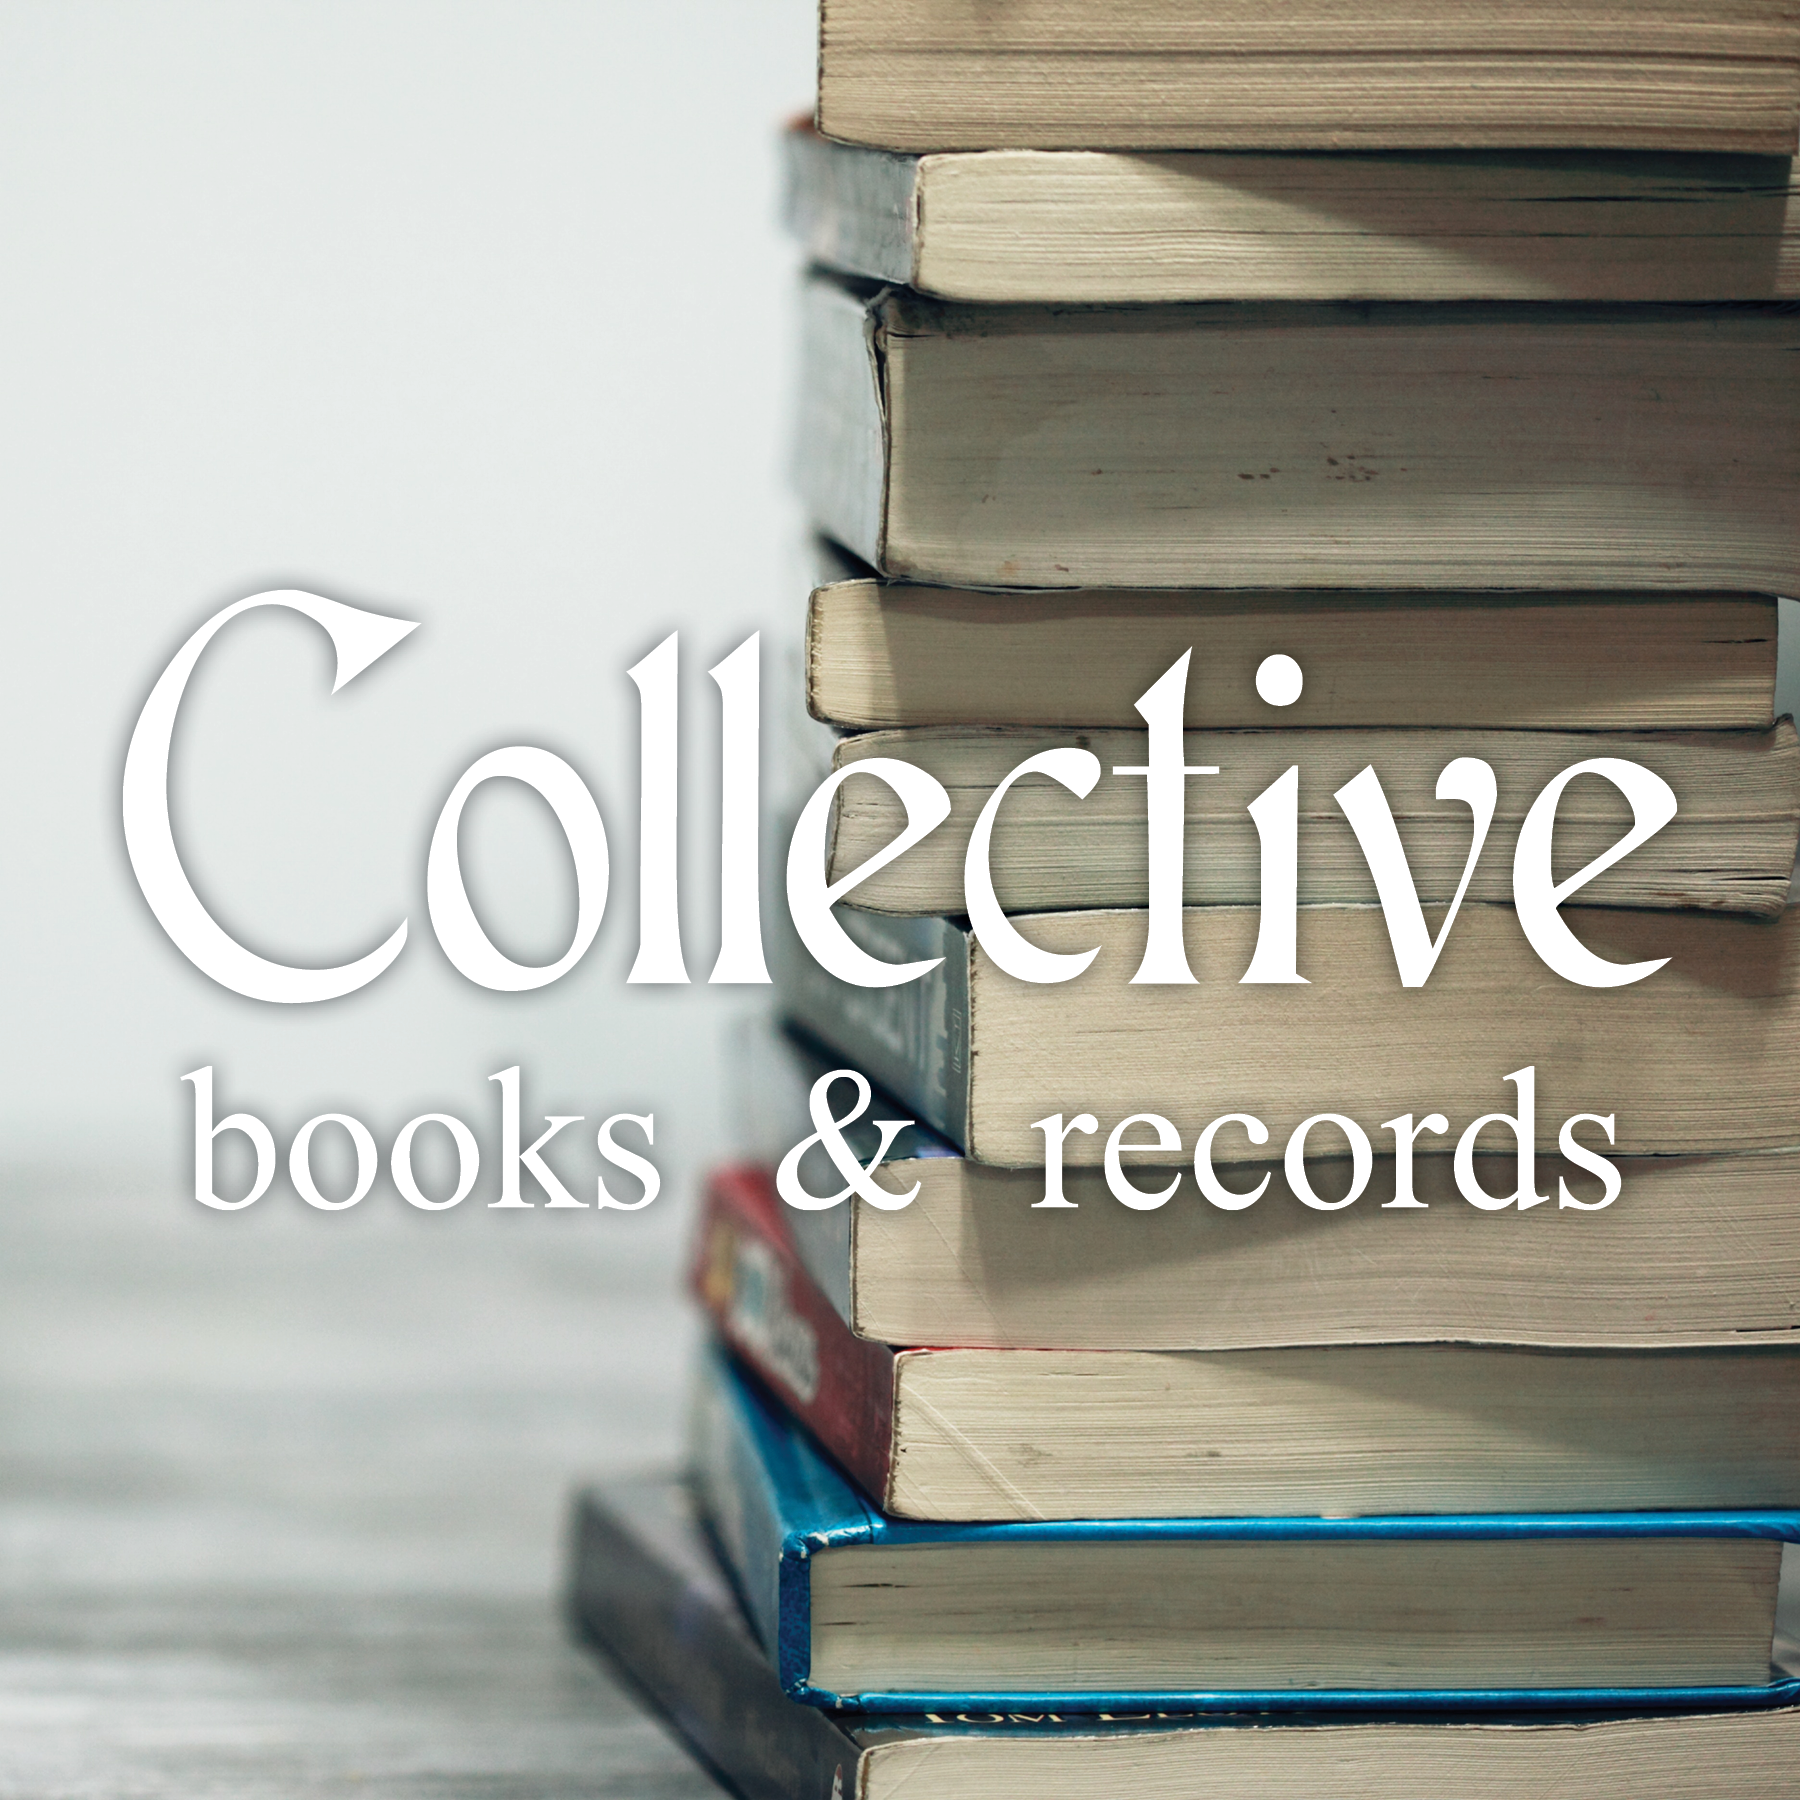 Collective Books & Records - 10 am – 8 pm | Monday – Friday10 am – 5 pm | Saturday & Sunday